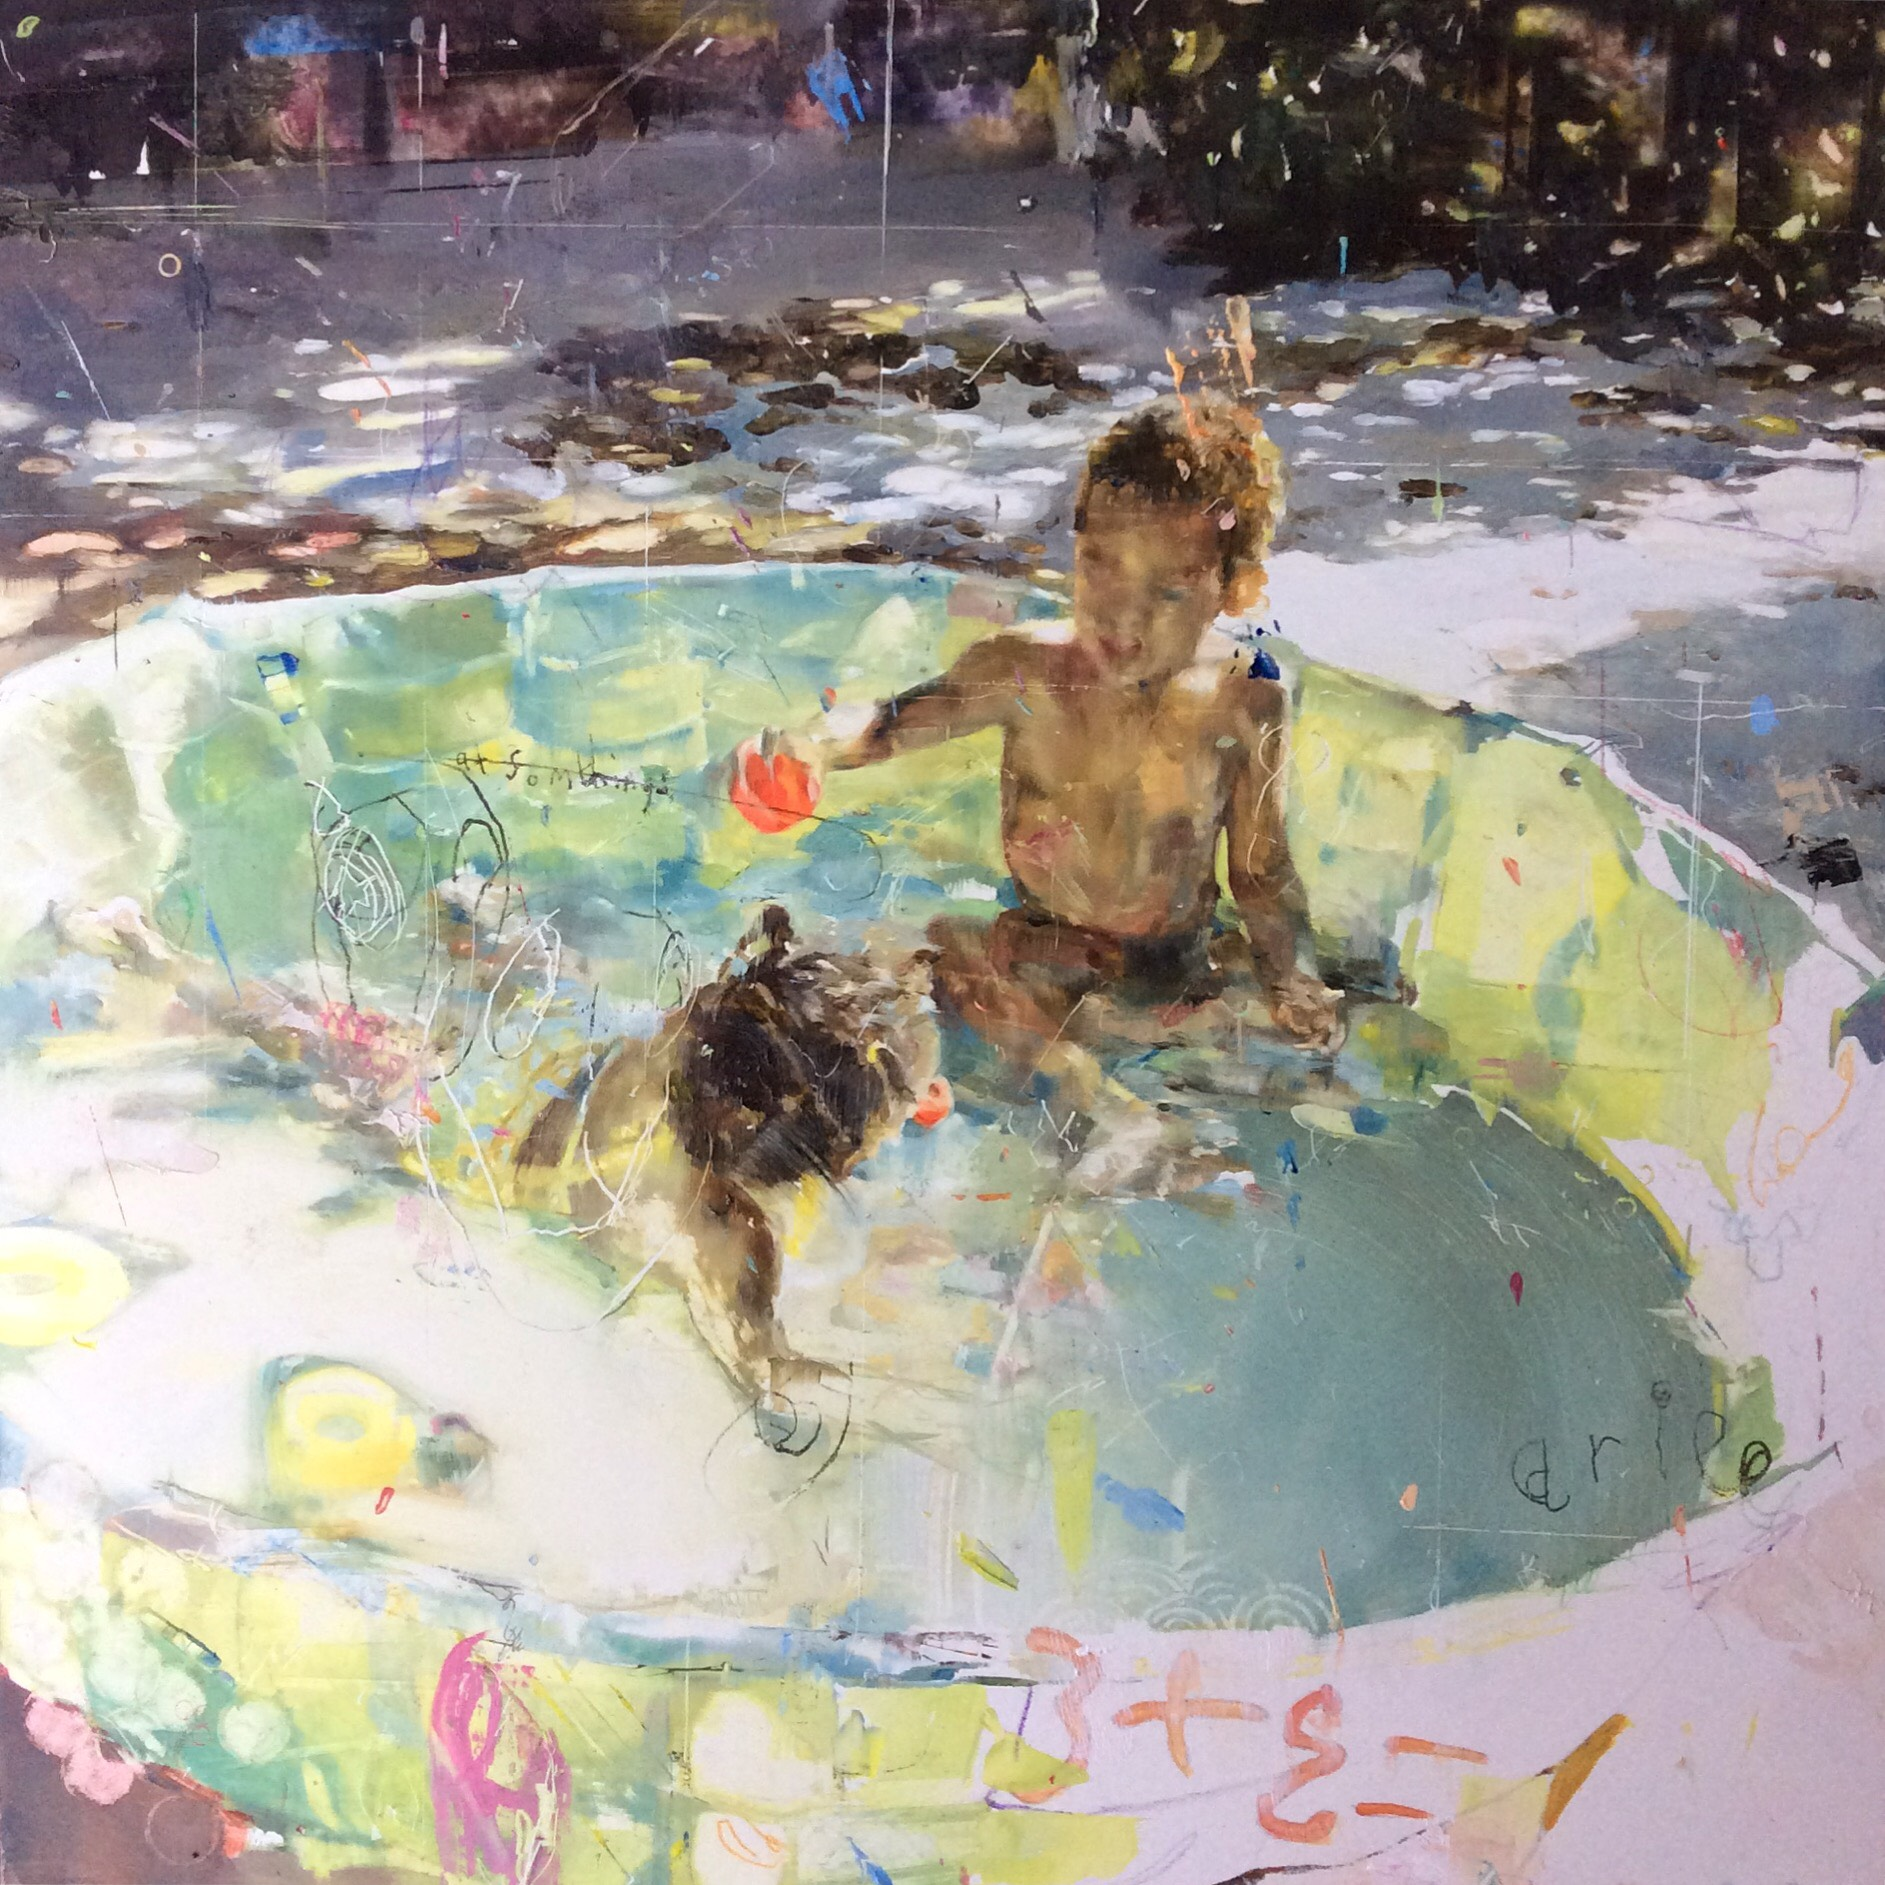 Dunk. Angela Bell. Jackson's Painting Prize.